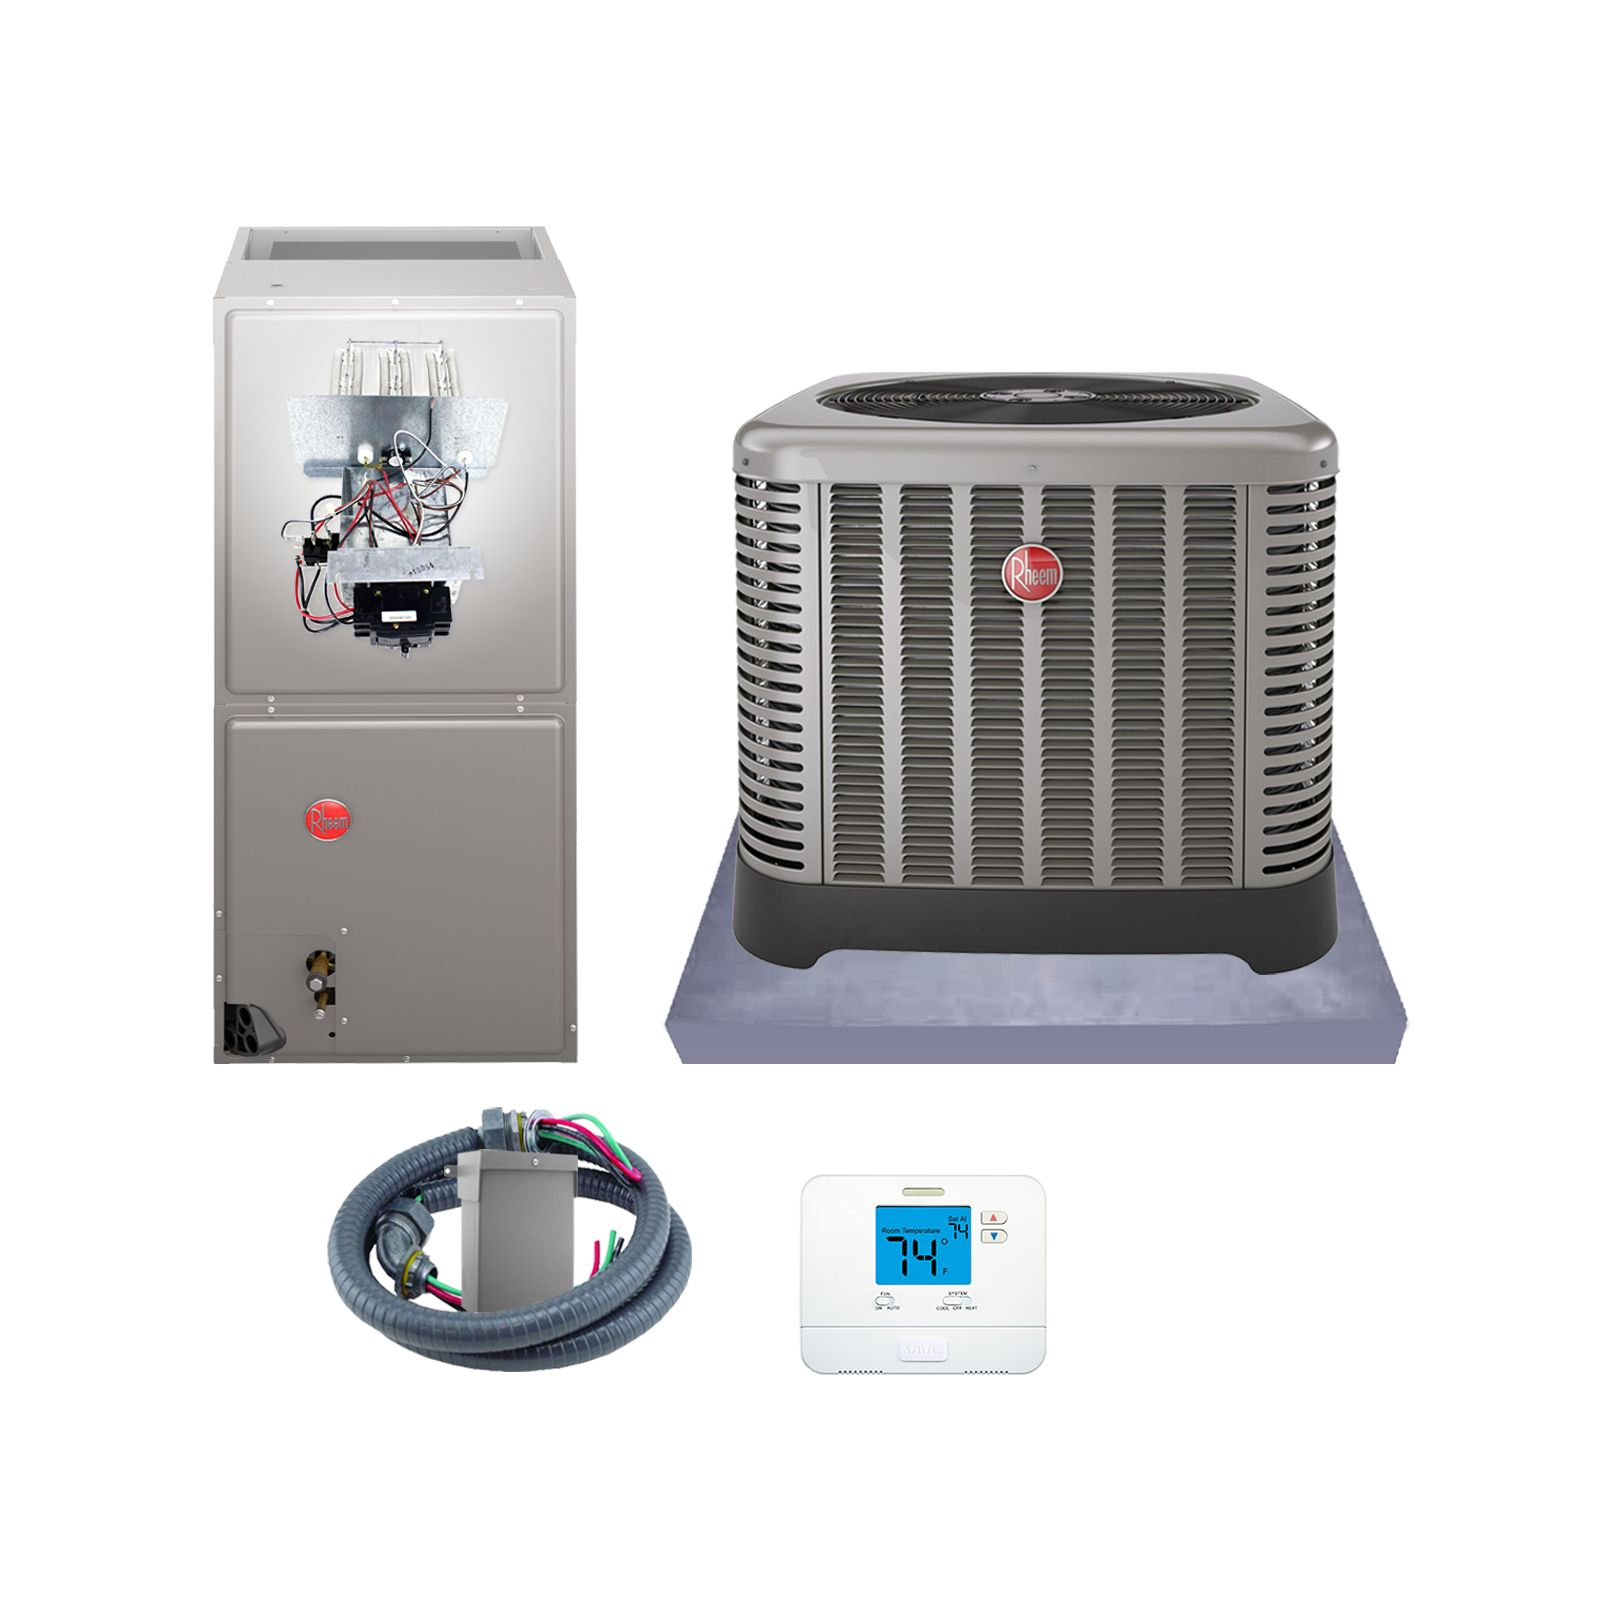 Rheem (AHRI 7940565) 1 1/2 Ton, 16 SEER/13 EER Classic Series, Air Conditioner Split System and Install Kit